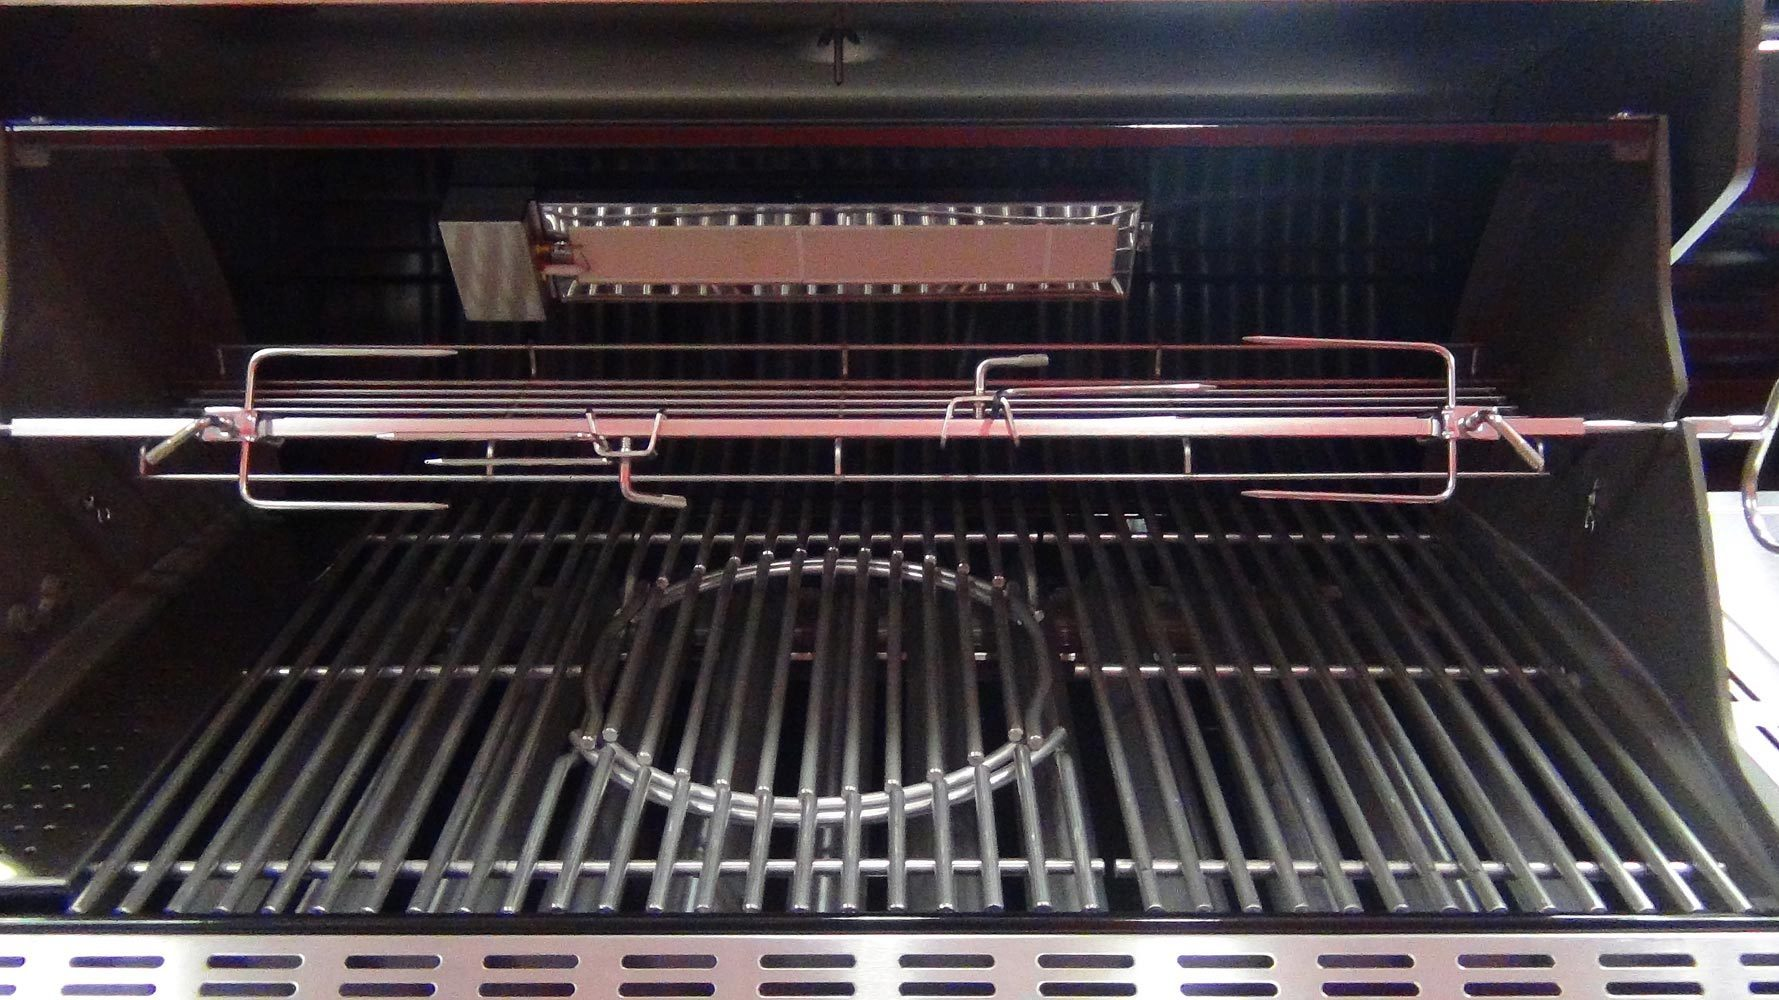 Weber Summit S 670 Bbq Gbs Stainless Steel The Barbecue